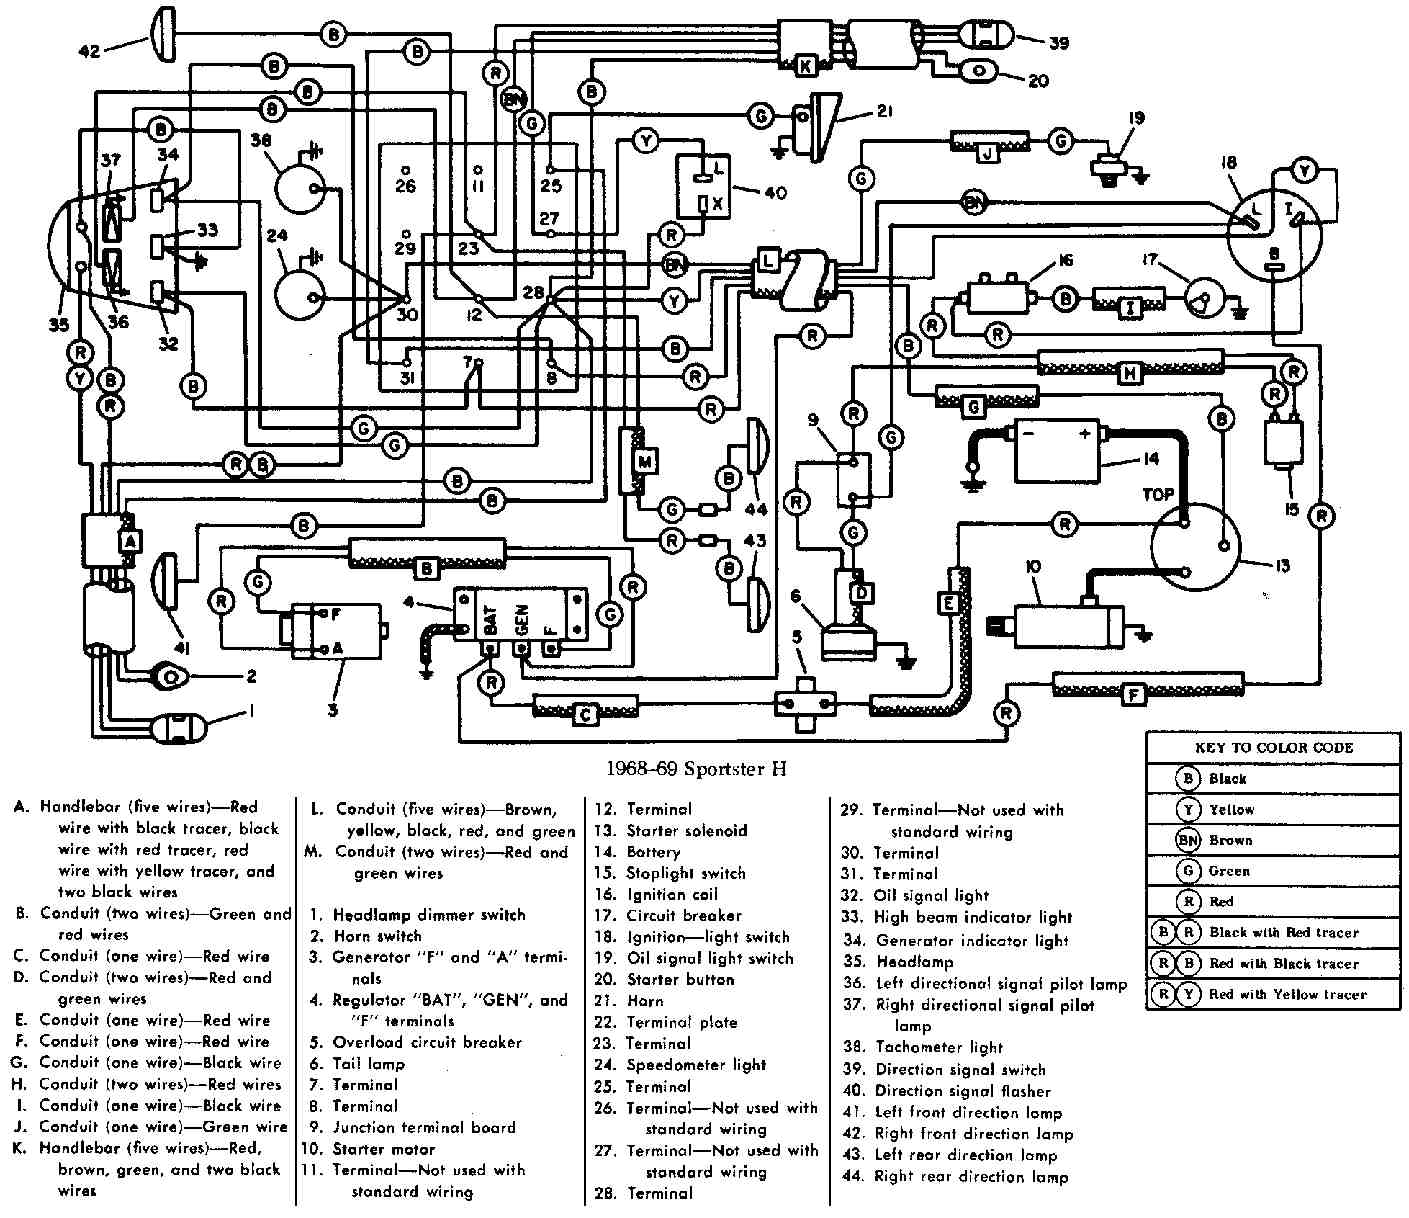 [SCHEMATICS_48ZD]  HARLEY DAVIDSON - Motorcycles Manual PDF, Wiring Diagram & Fault Codes | 1986 Flht Wiring Diagram |  | Motorcycle Manuals News